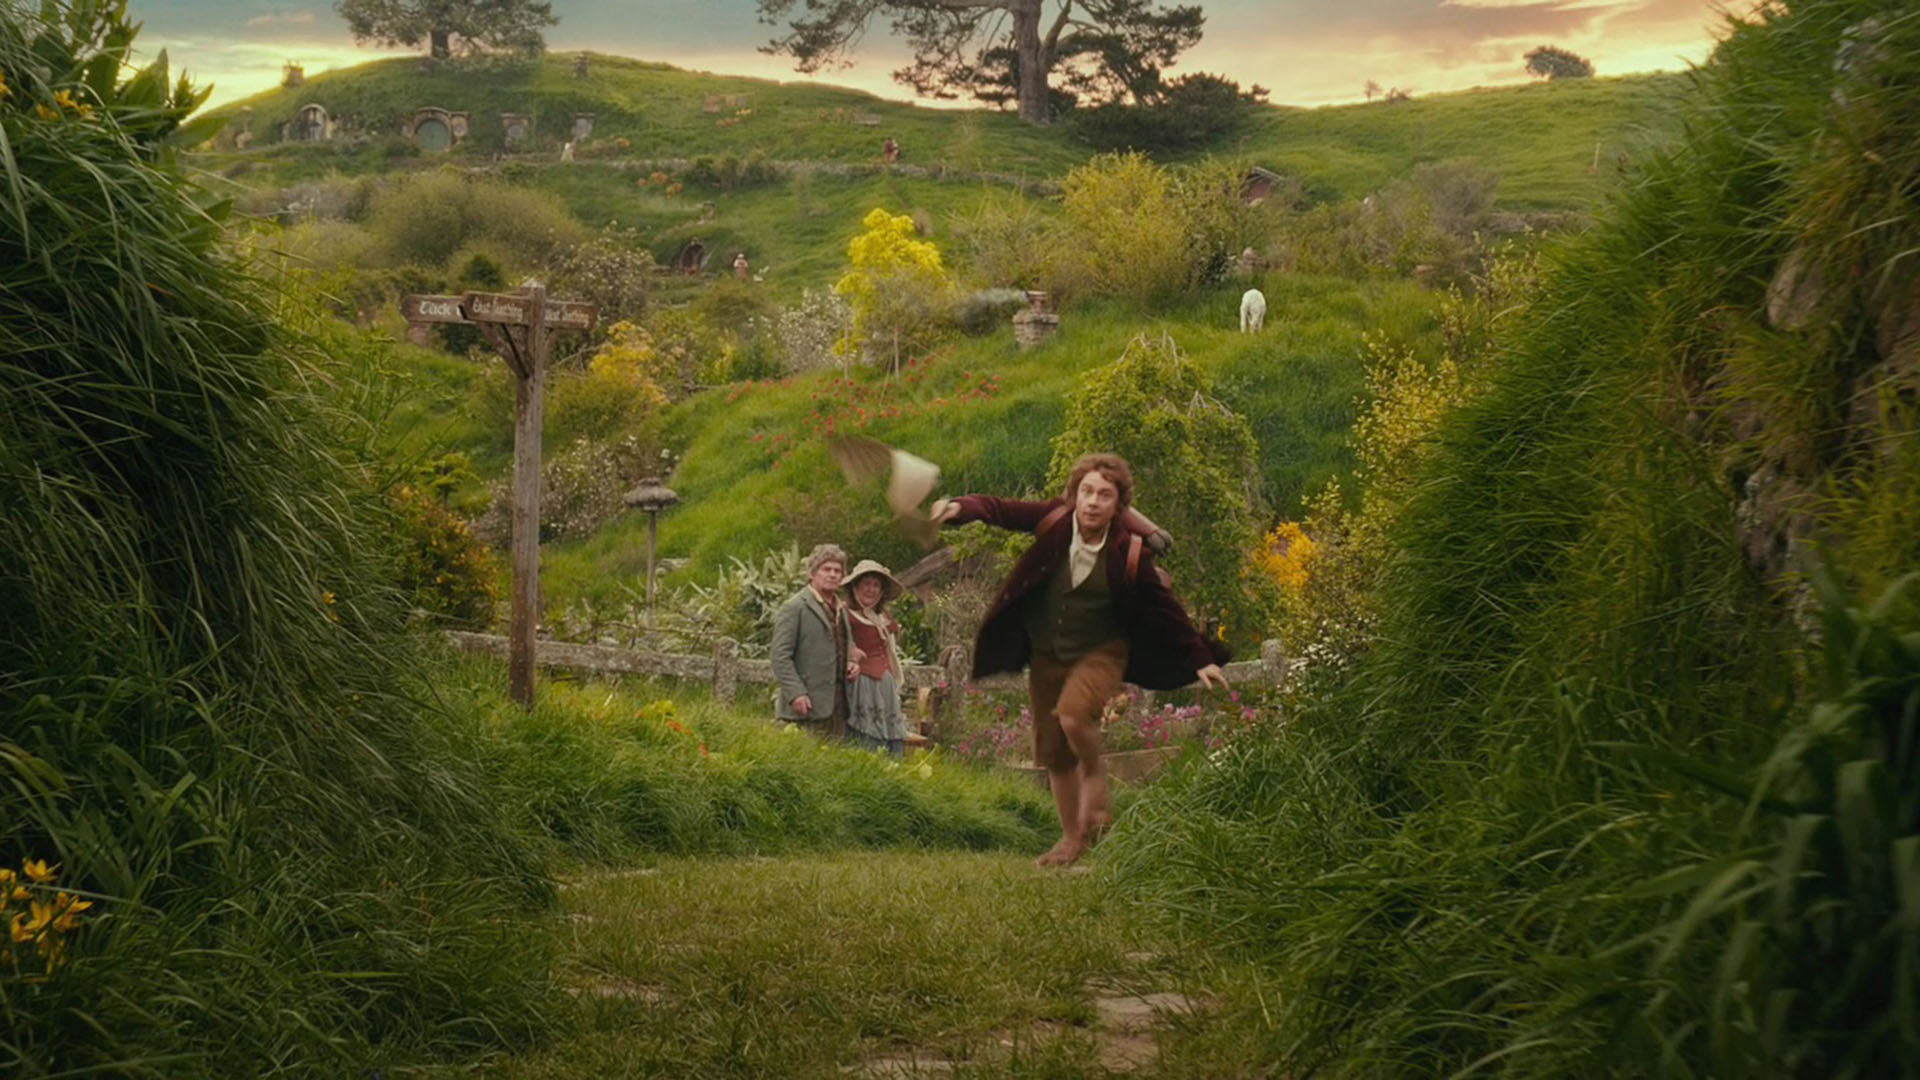 The Hobbit Wallpaper 1920x1080 The Hobbit 1920x1080 1920x1080